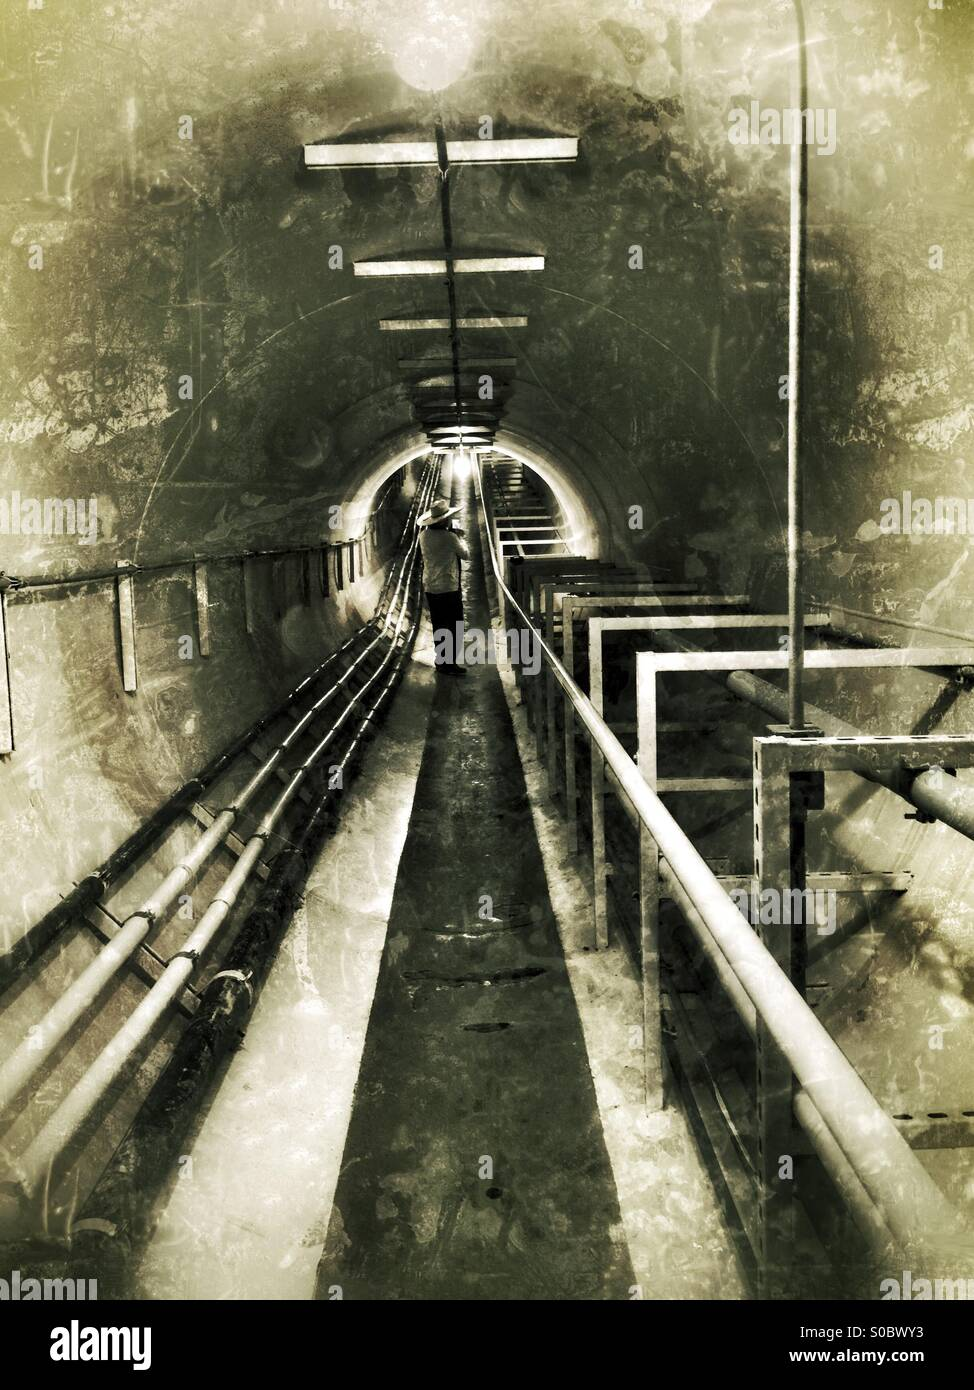 Person in air tunnel passage way - Stock Image